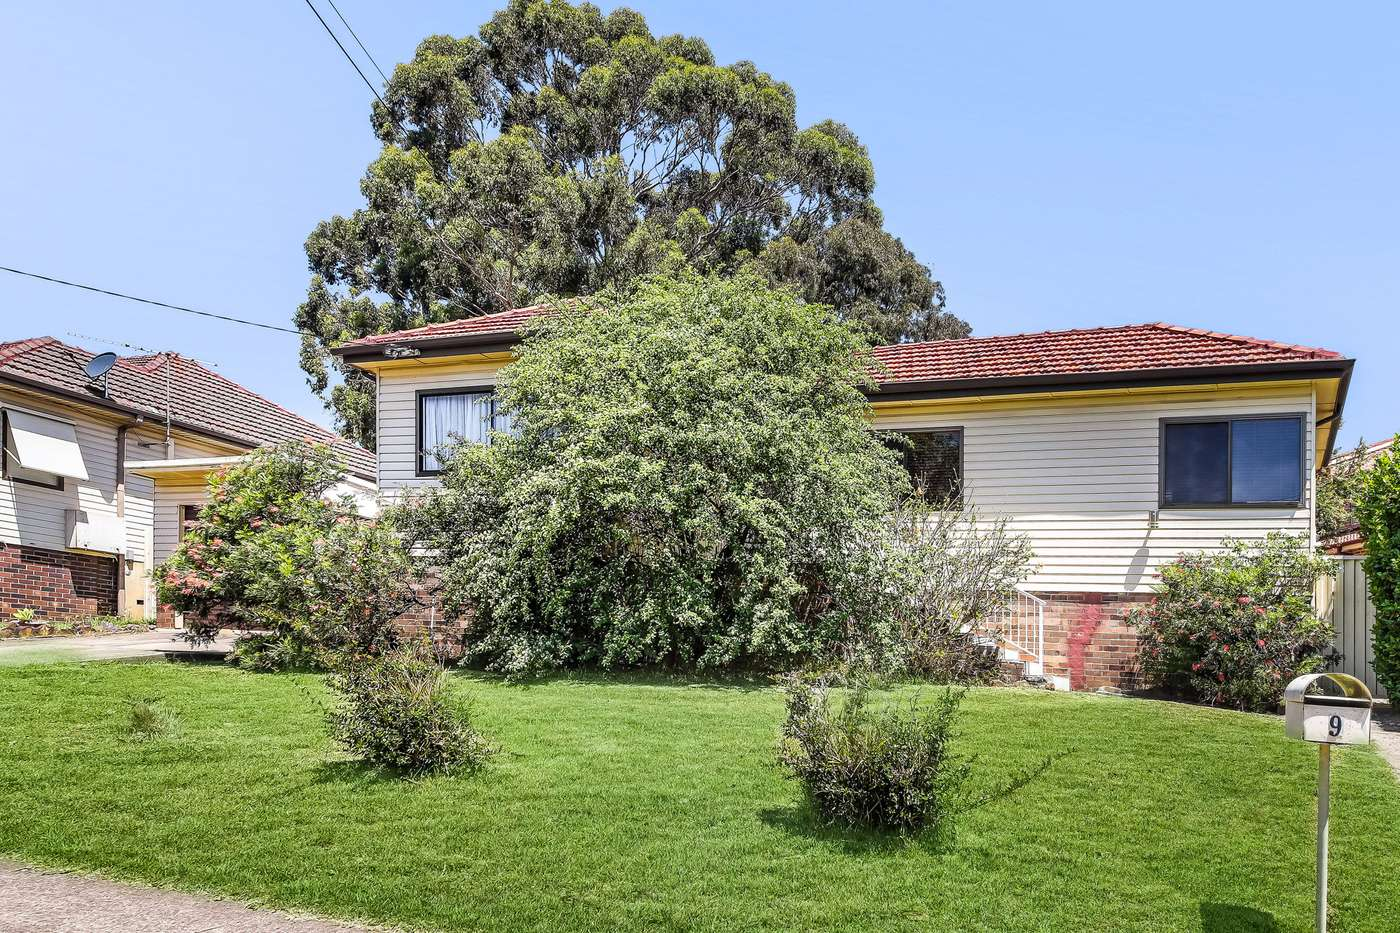 Main view of Homely house listing, 9 Arnold Avenue, Yagoona, NSW 2199